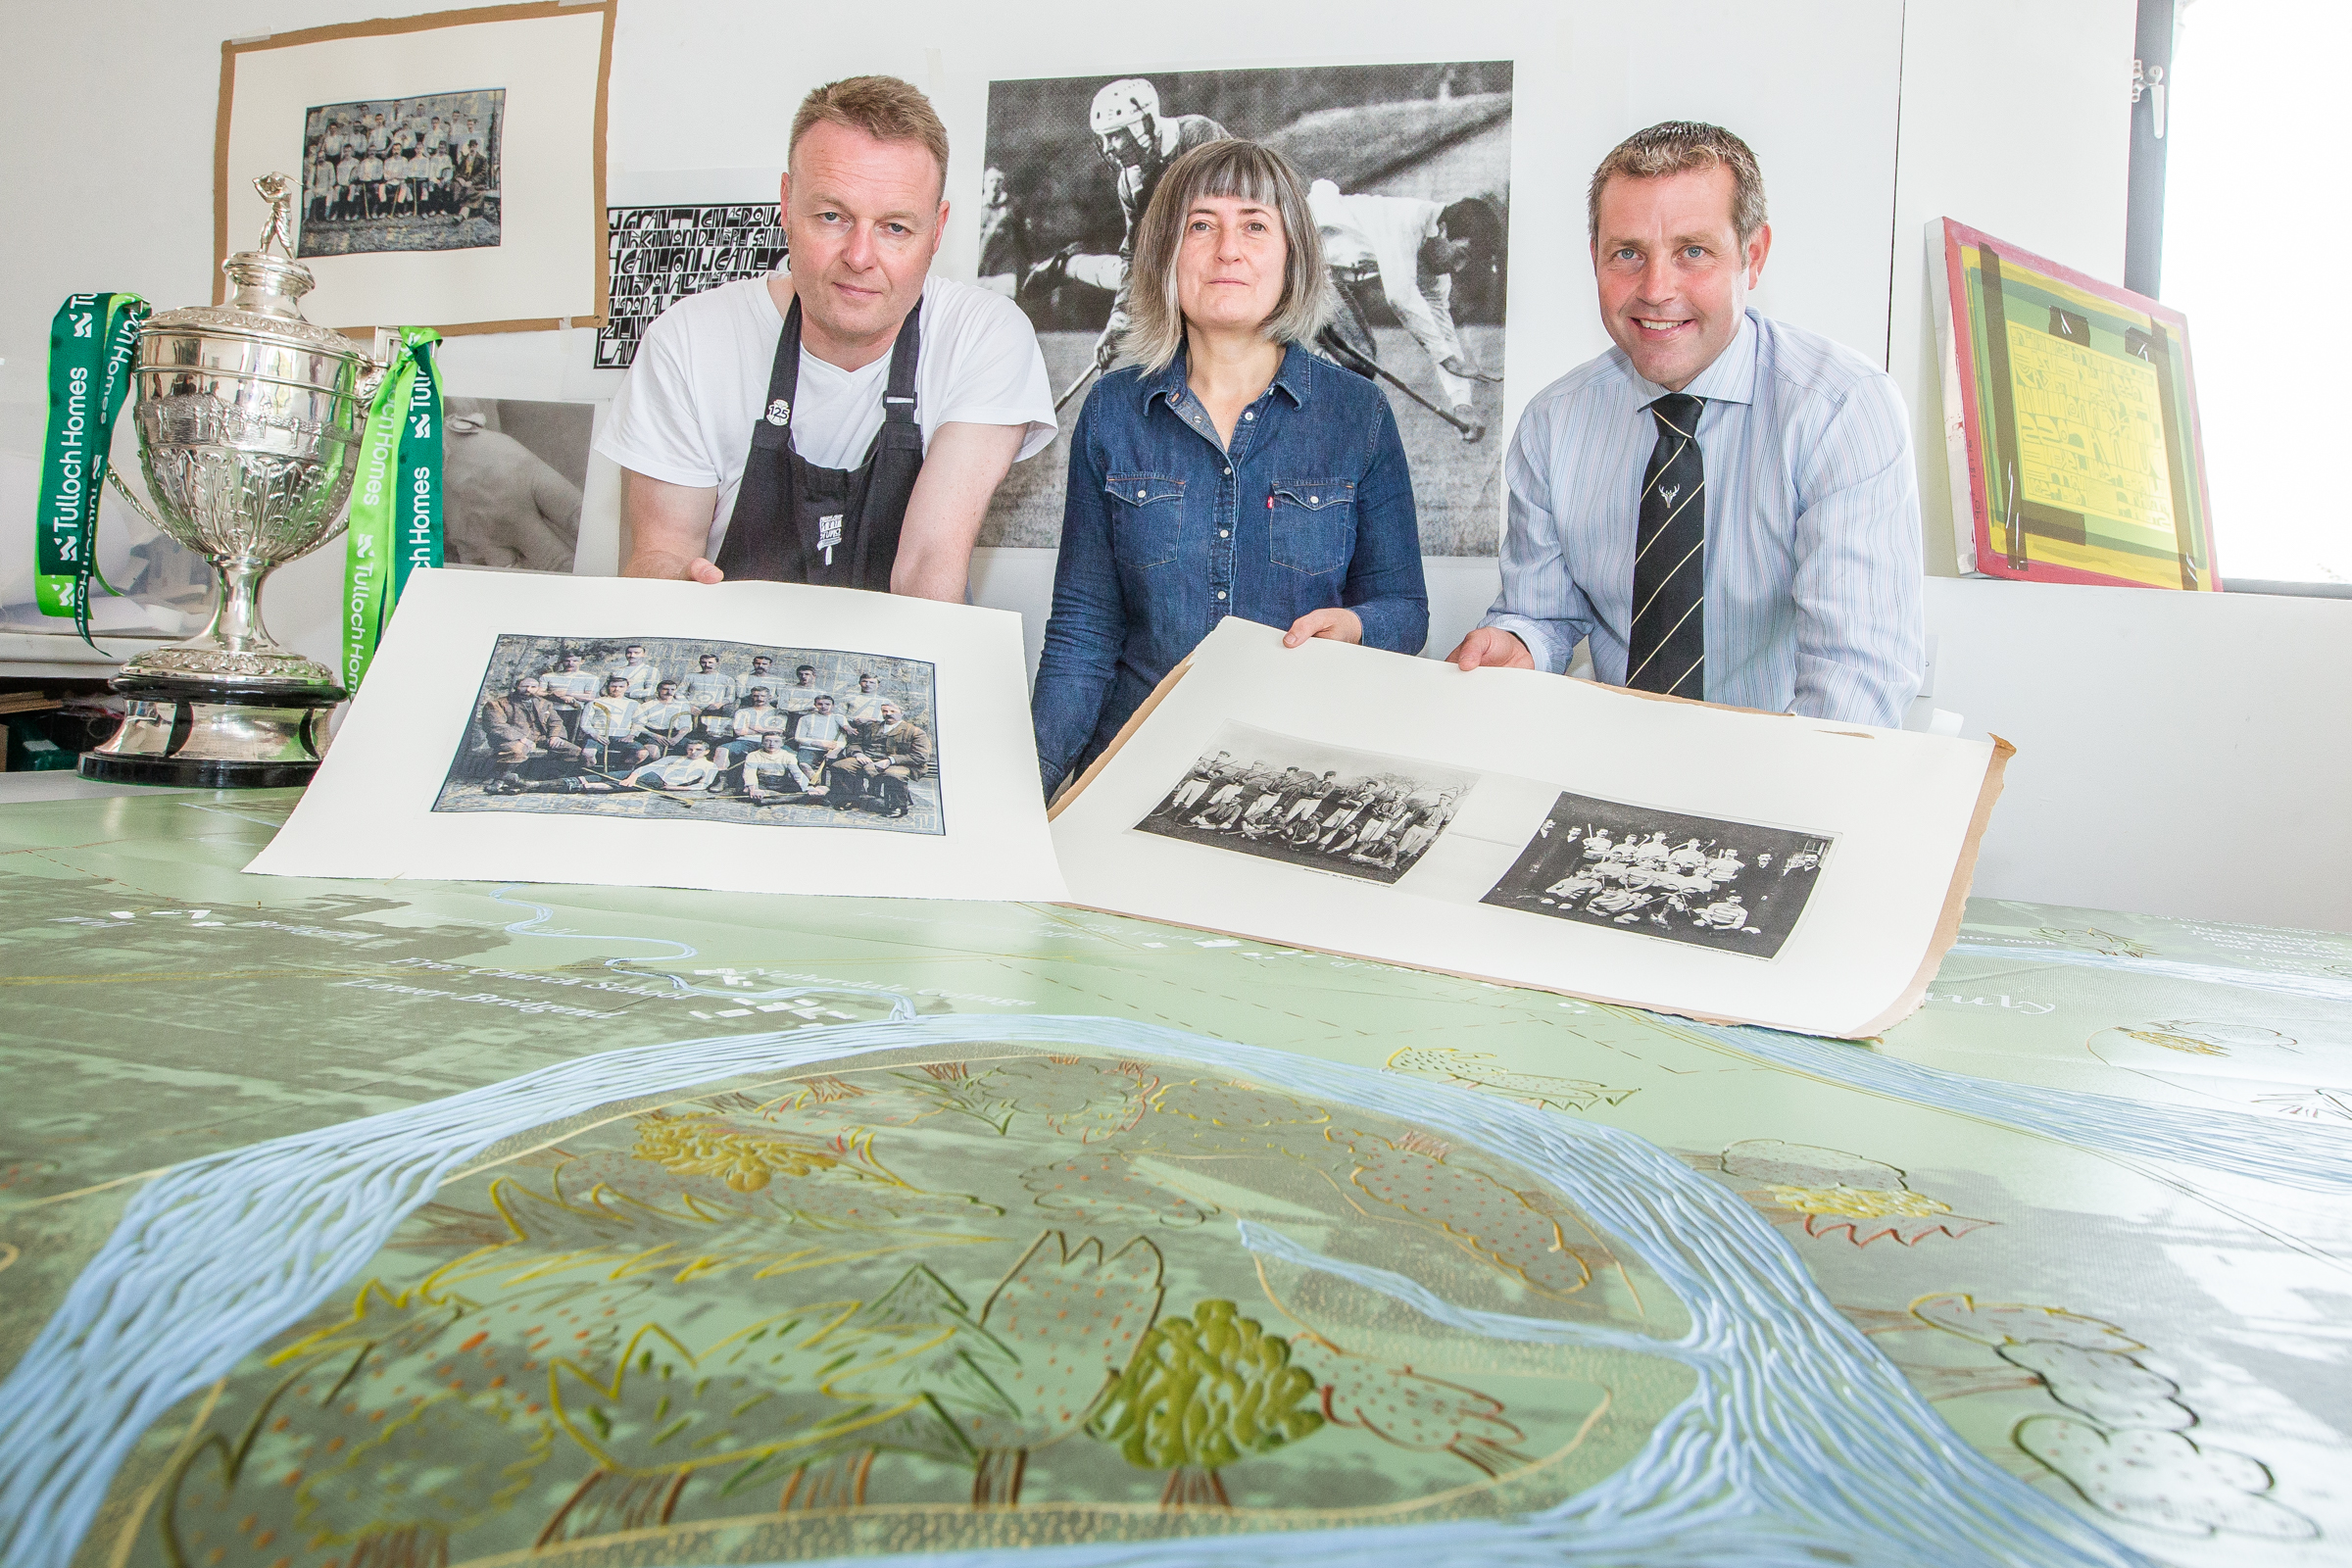 Artists John McNaught, Deidre Nelson and Vice-President of the Camanachd Association Steven MacKenzie gathered to launch the Throw Up 20.18 project in Inverness.